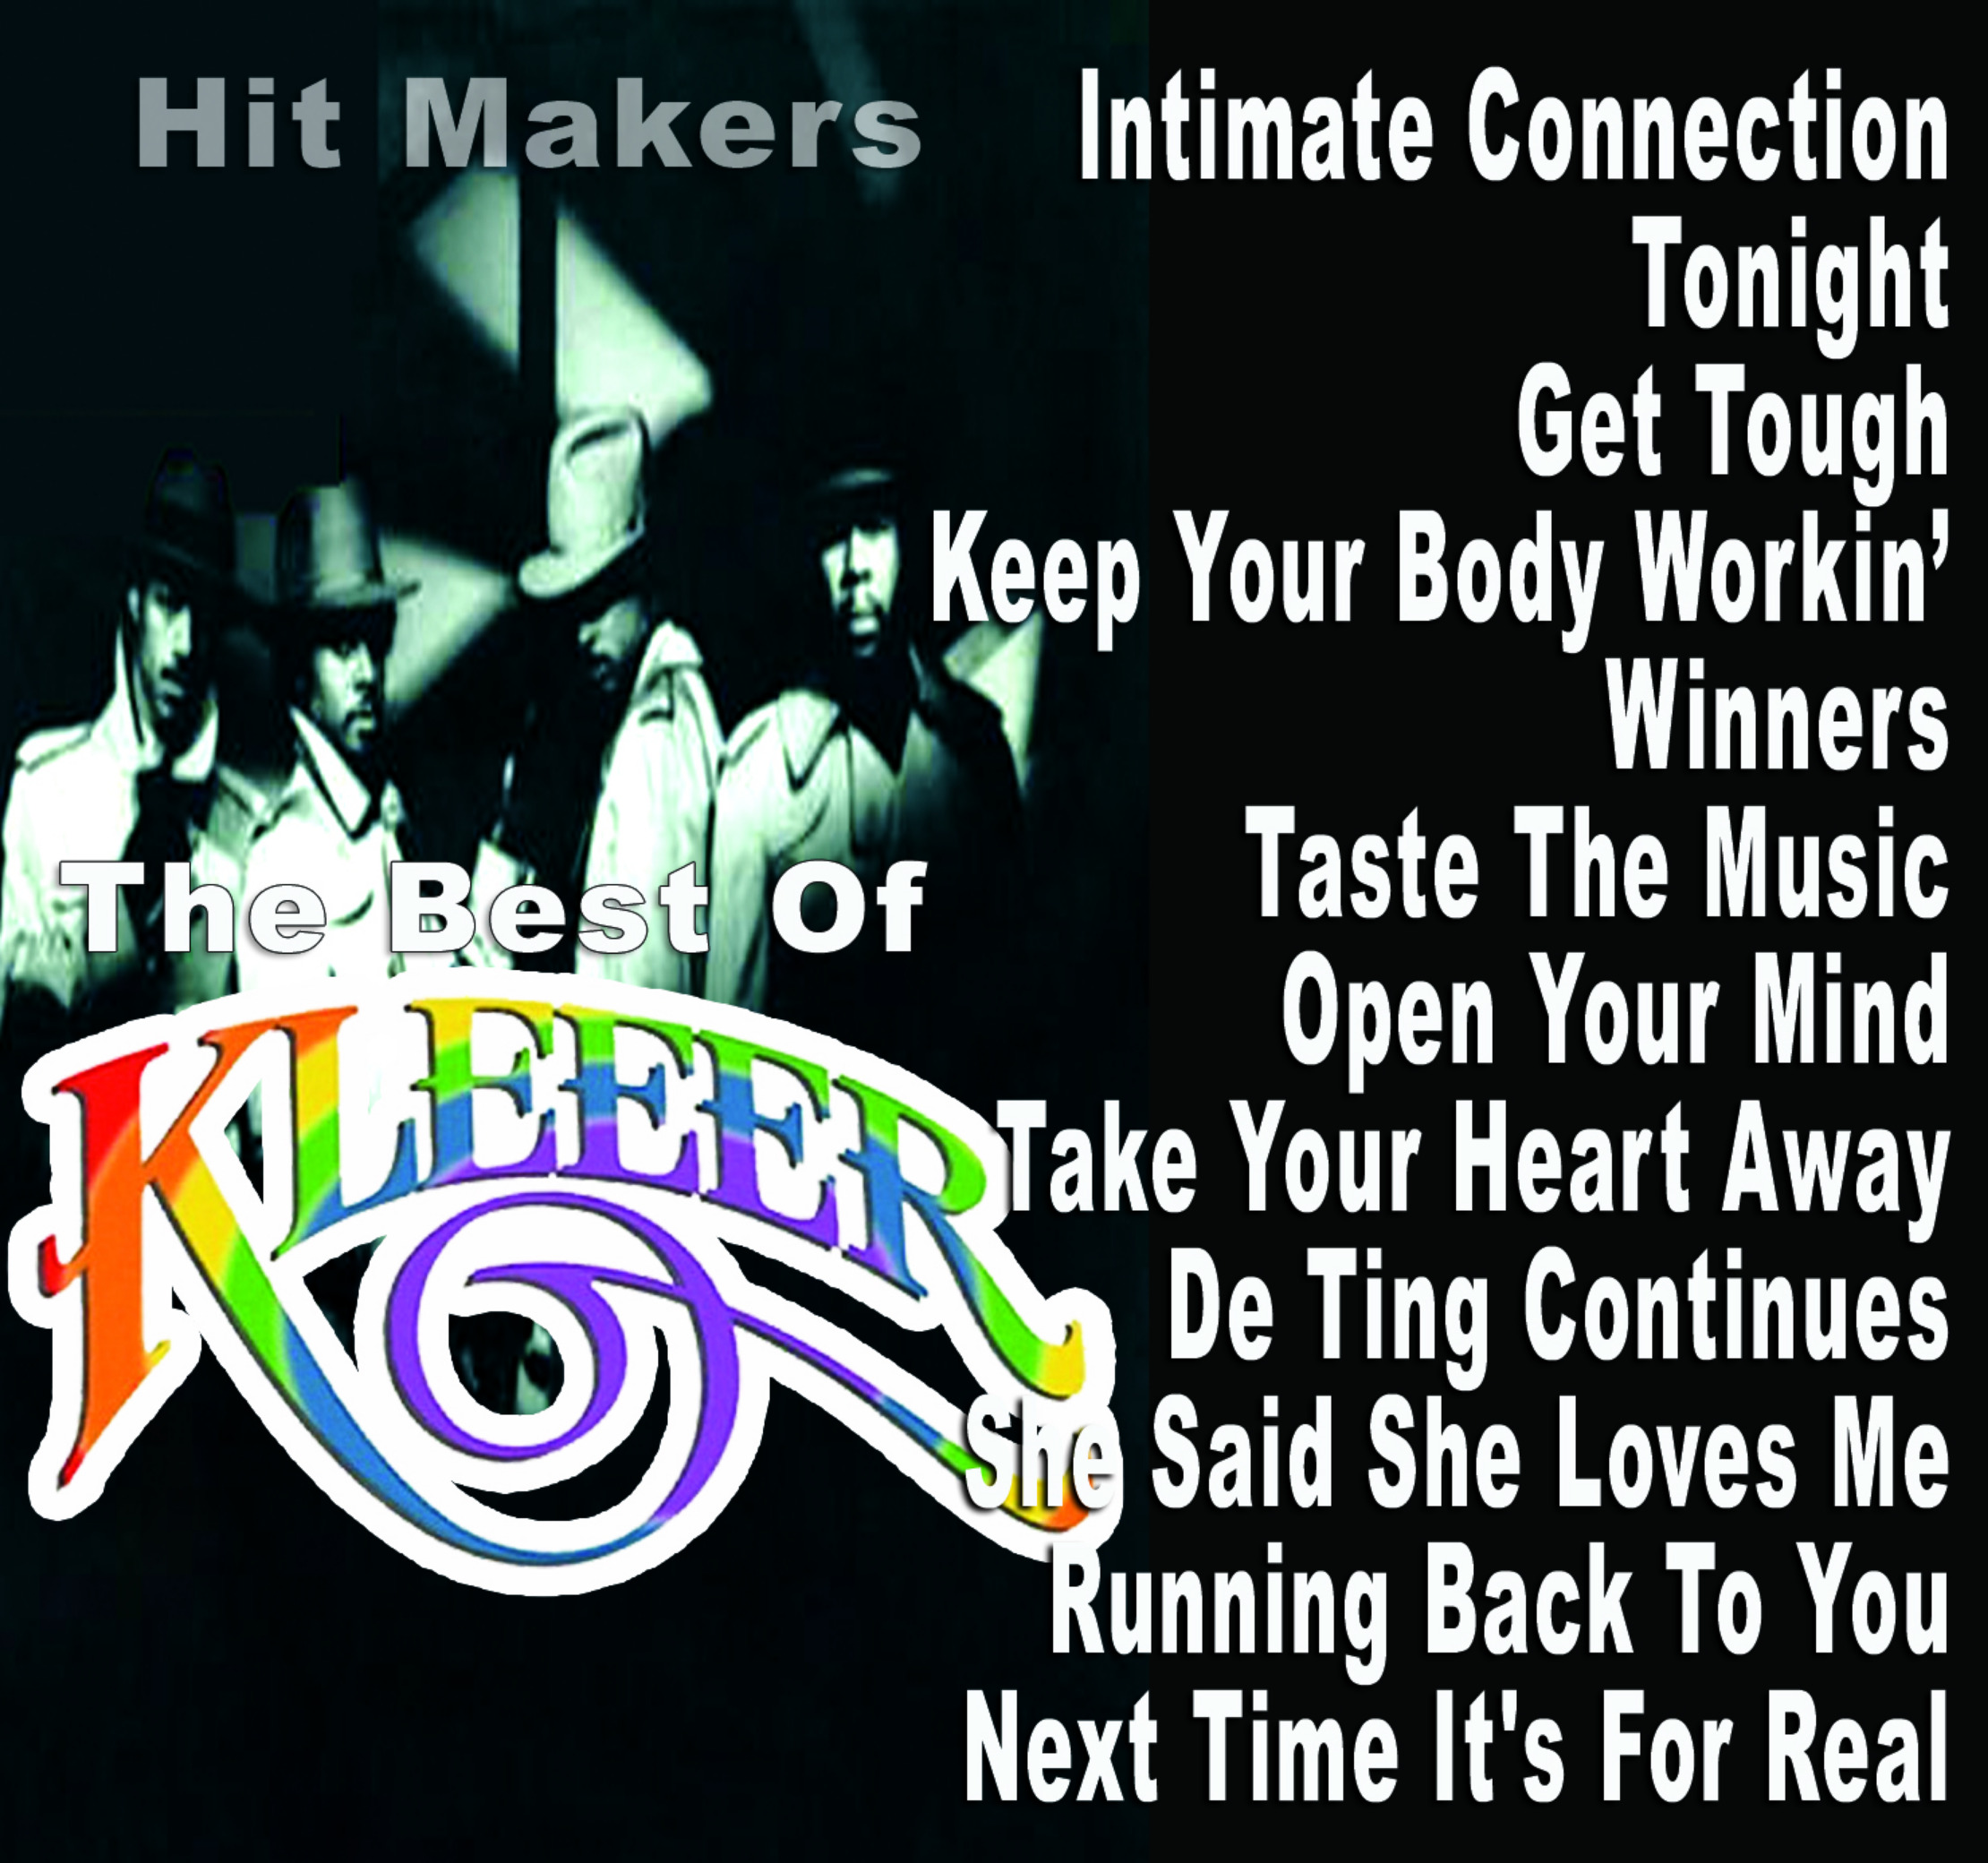 Best of Kleeer Our Best Work Mix MP3 Download